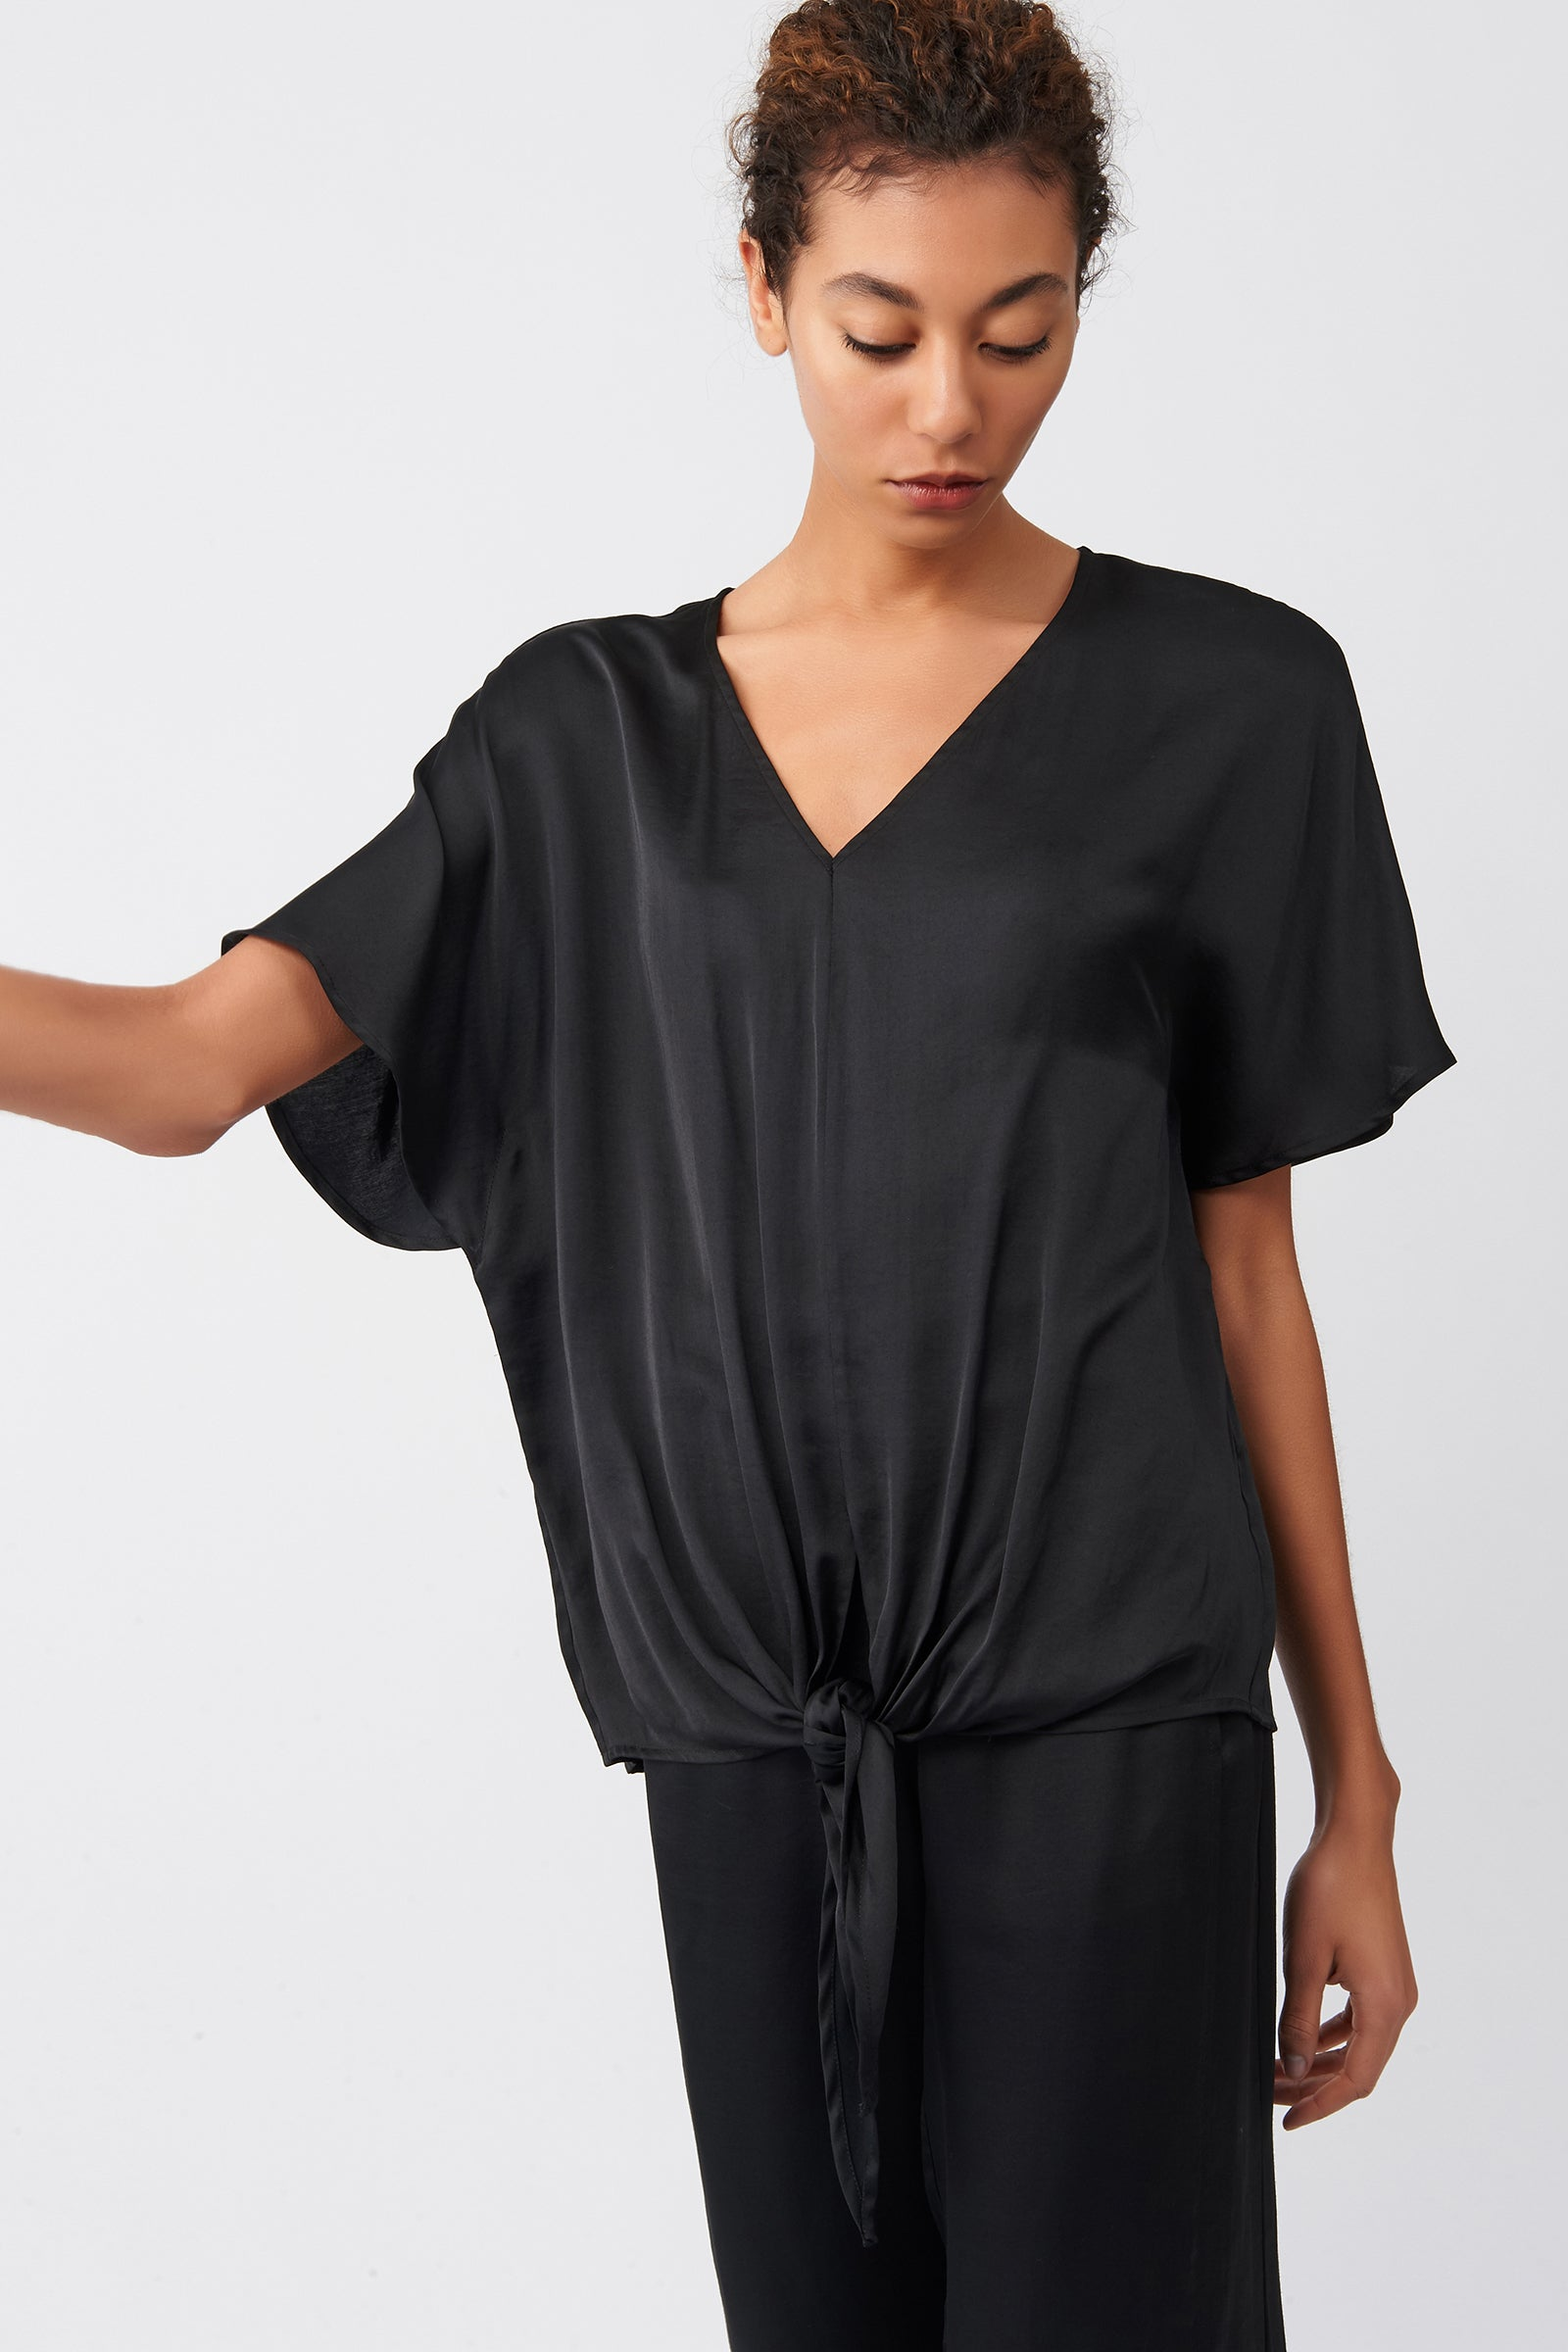 Kal Rieman Tie Front Top in Black on Model Front View